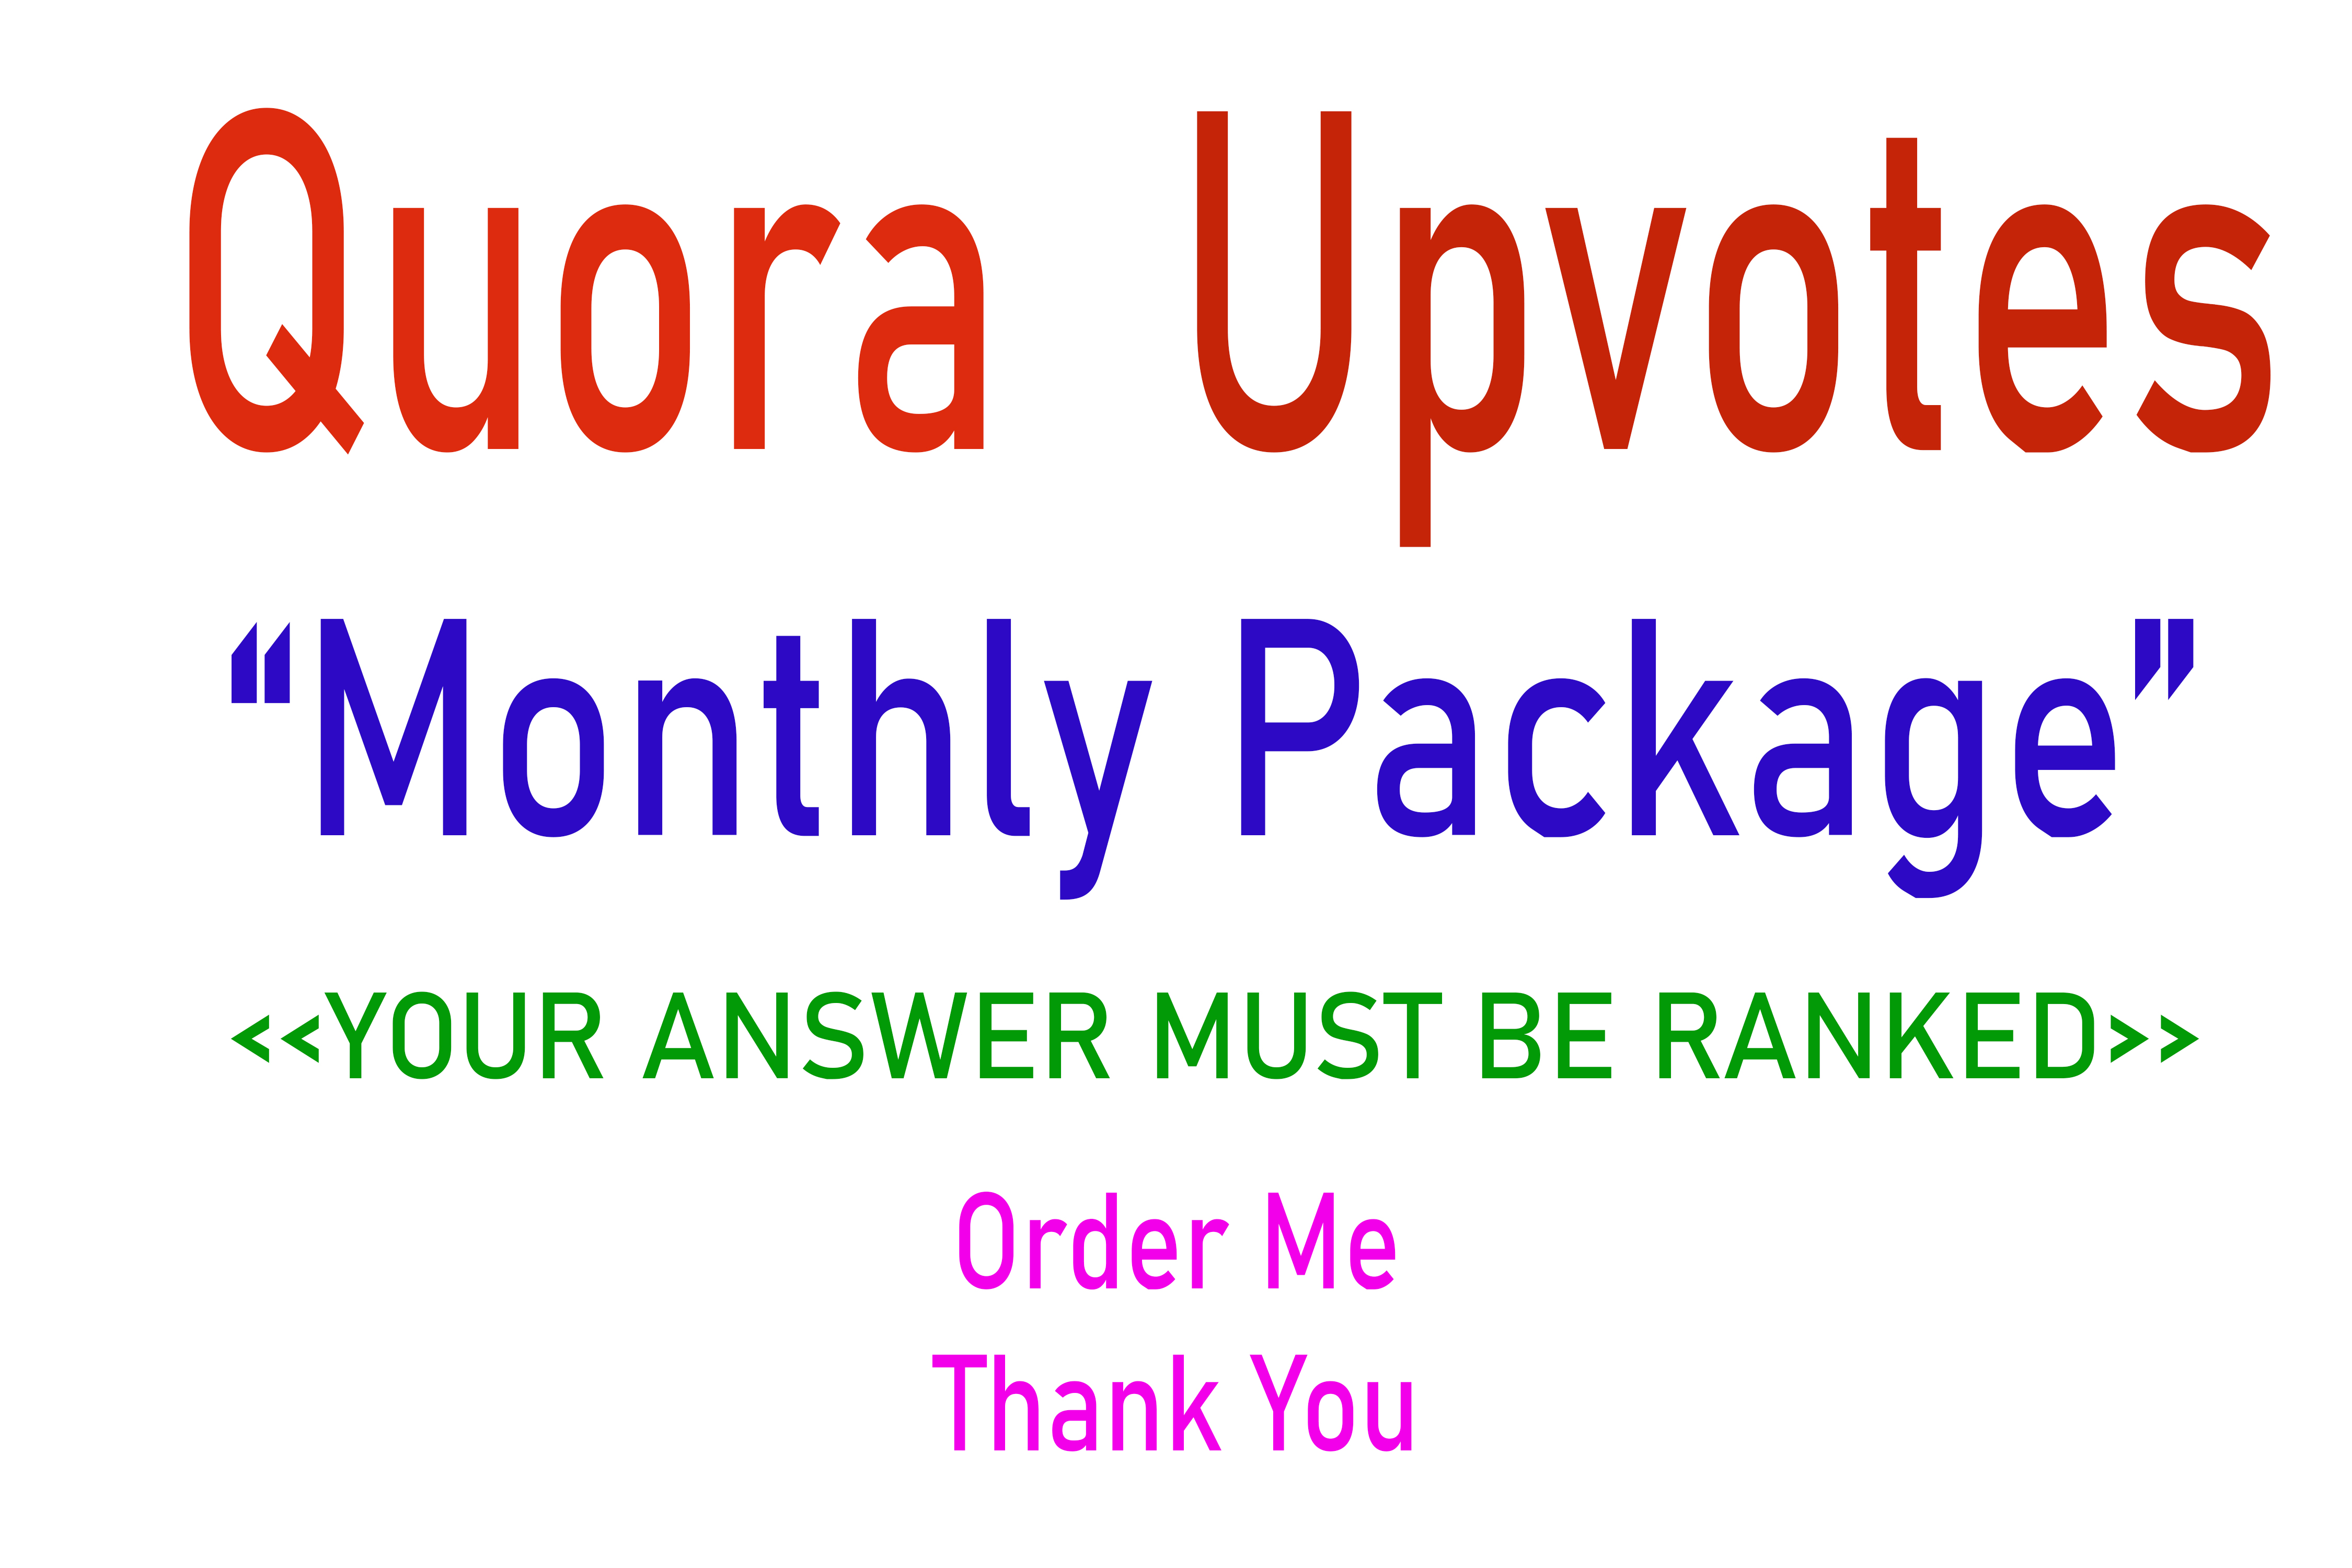 Quora upvotes MONTHLY PACKAGE for you